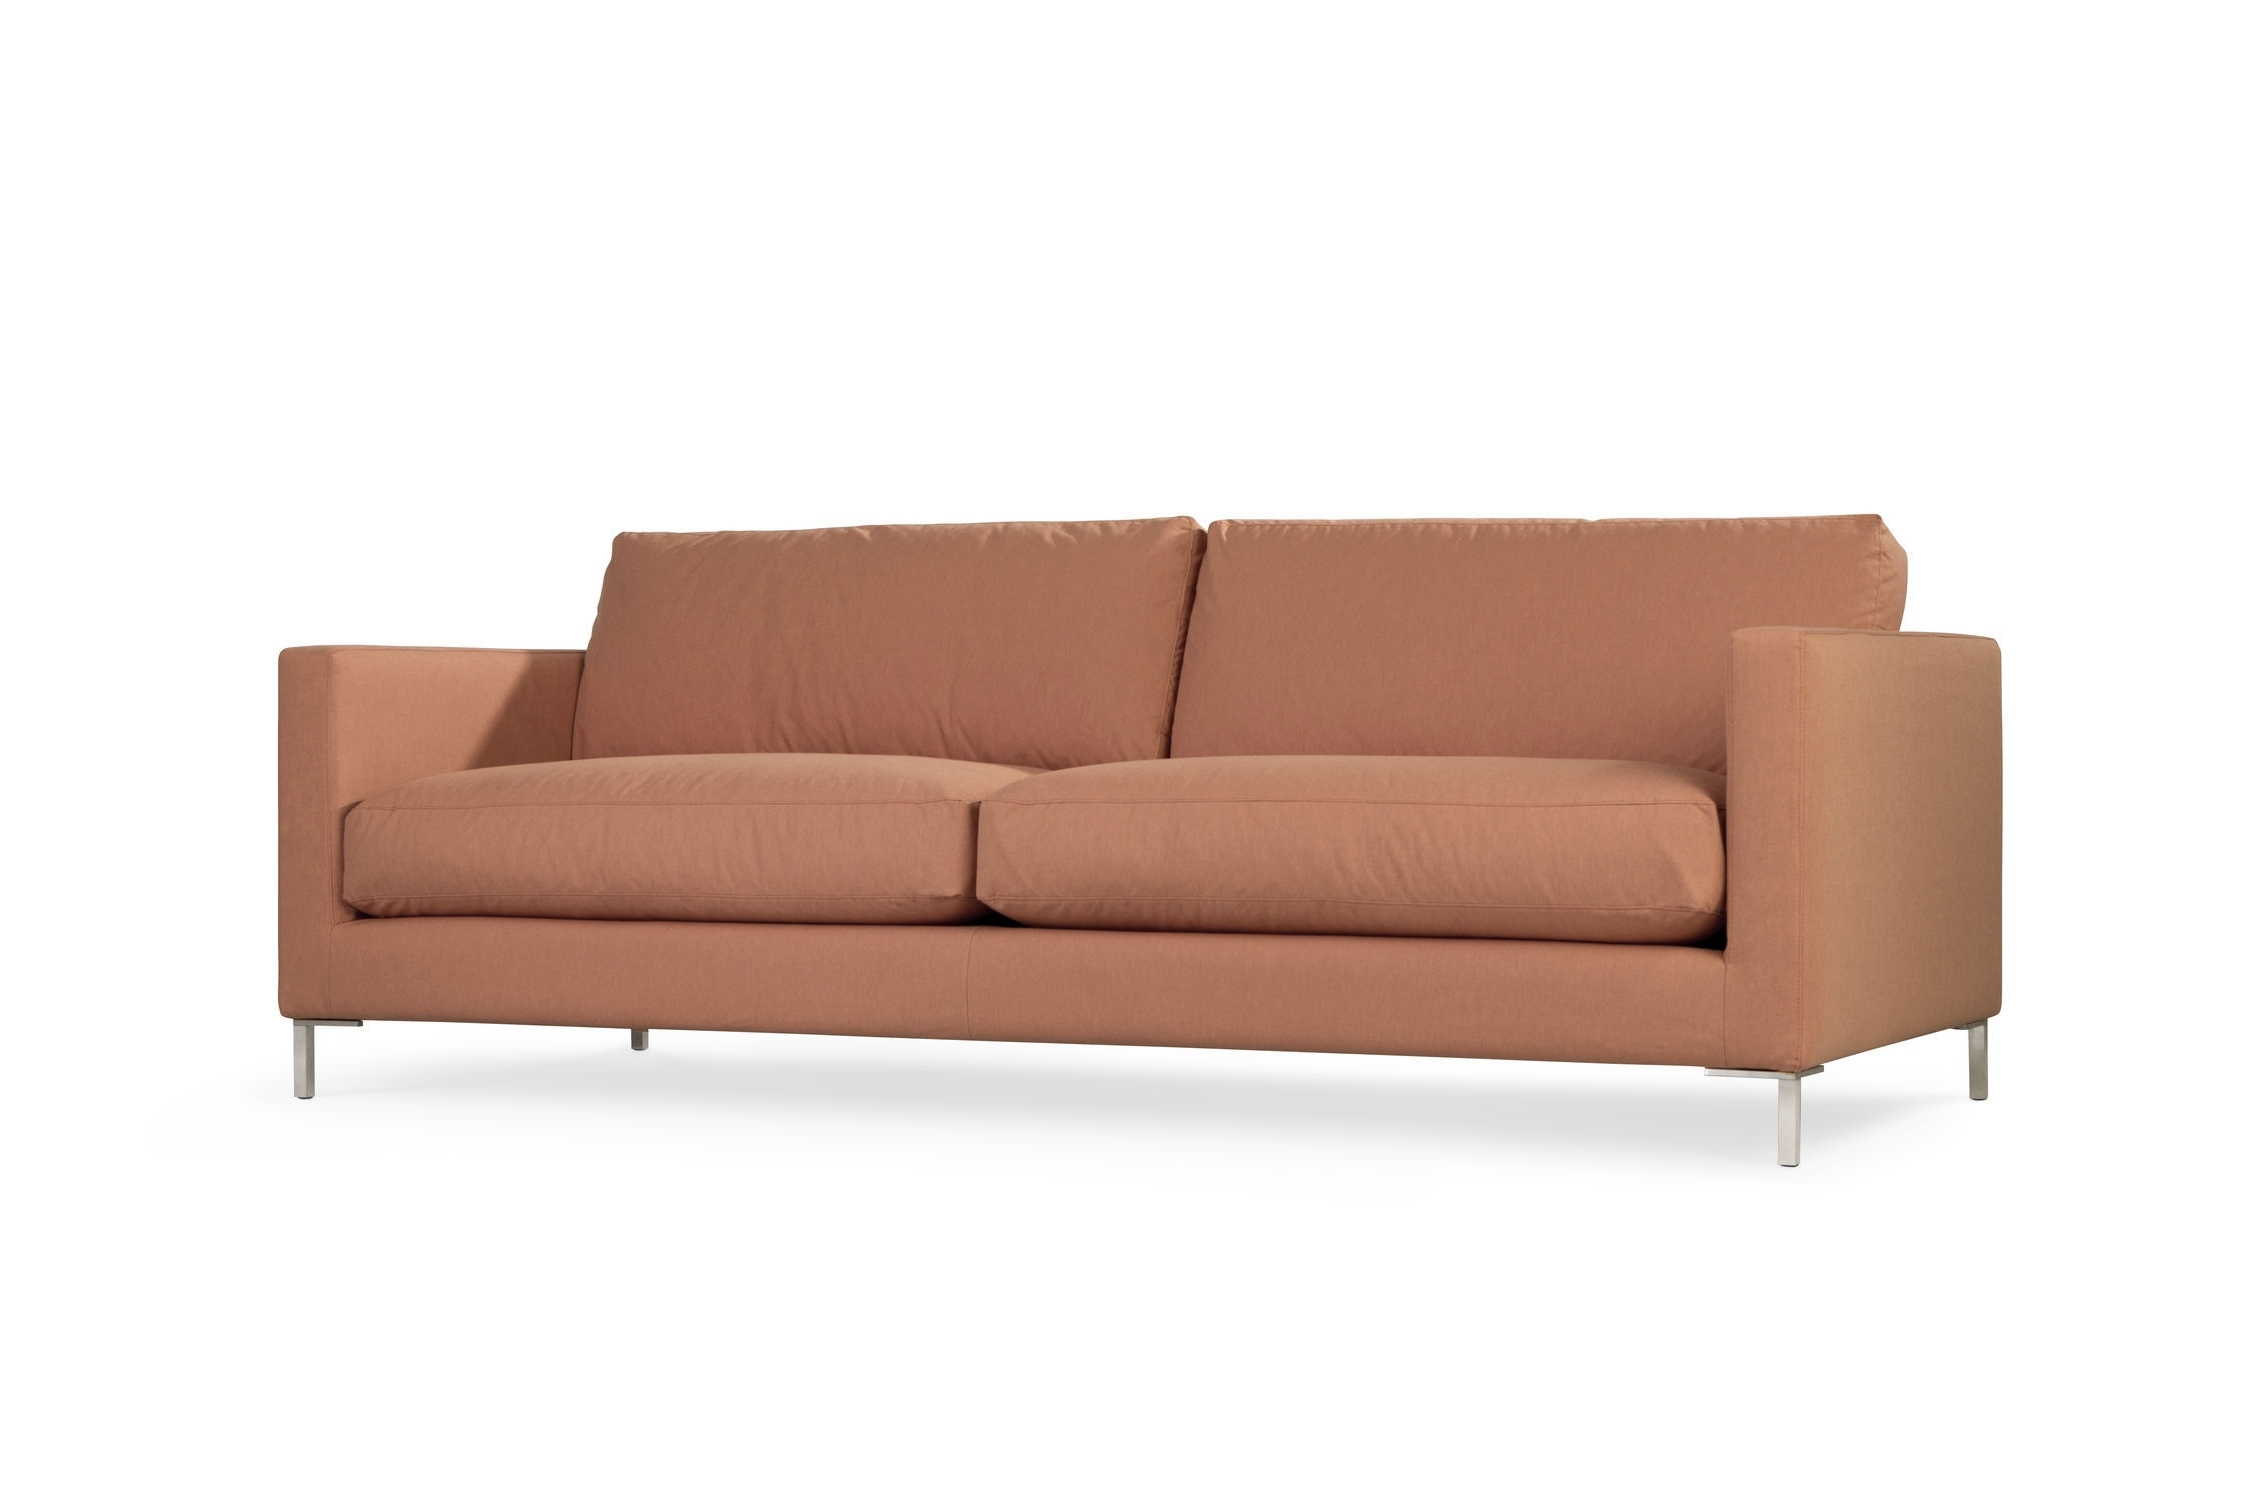 Newest Oshawa Sectional Sofas In Furniture : Sofa Kijiji Oshawa Reclining Sofa Australia Klaussner (View 8 of 15)